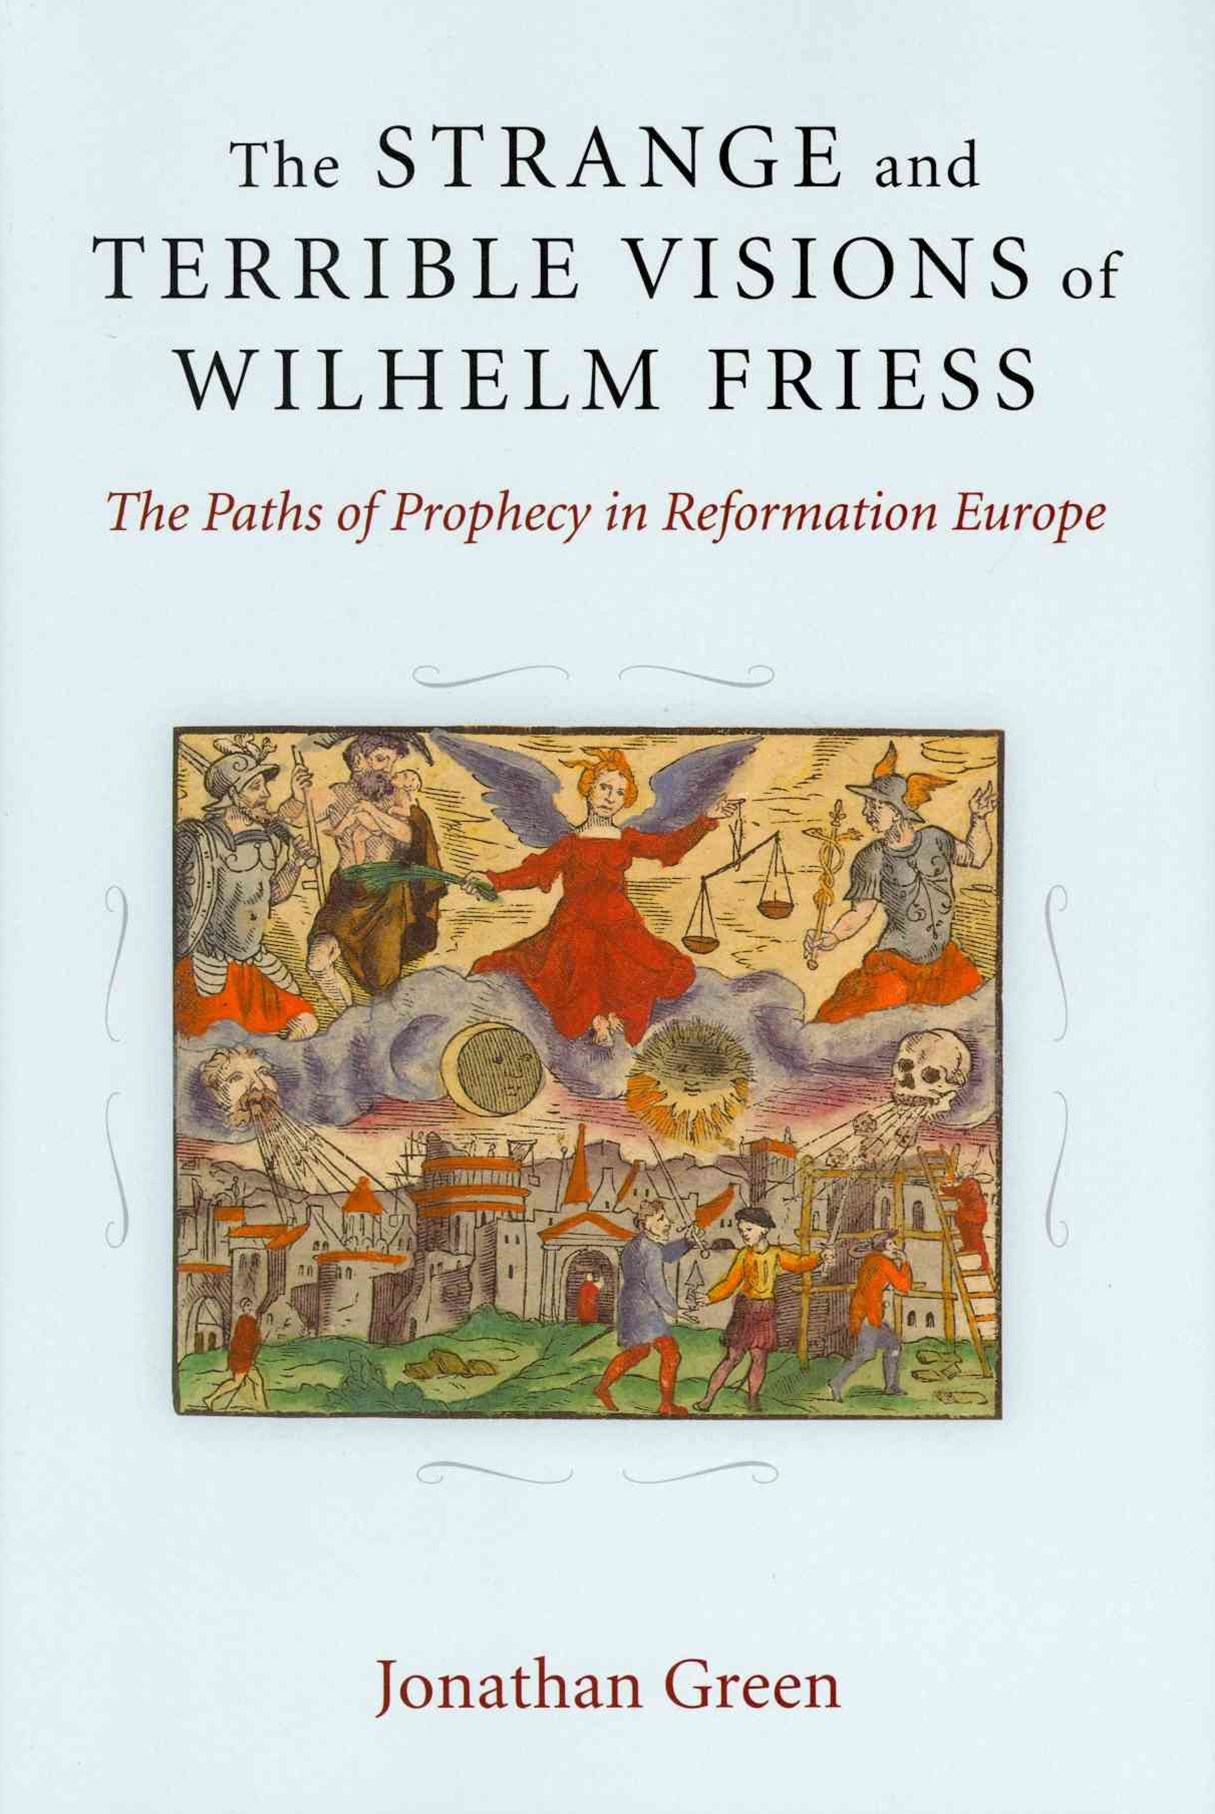 Strange and Terrible Visions of Wilhelm Friess